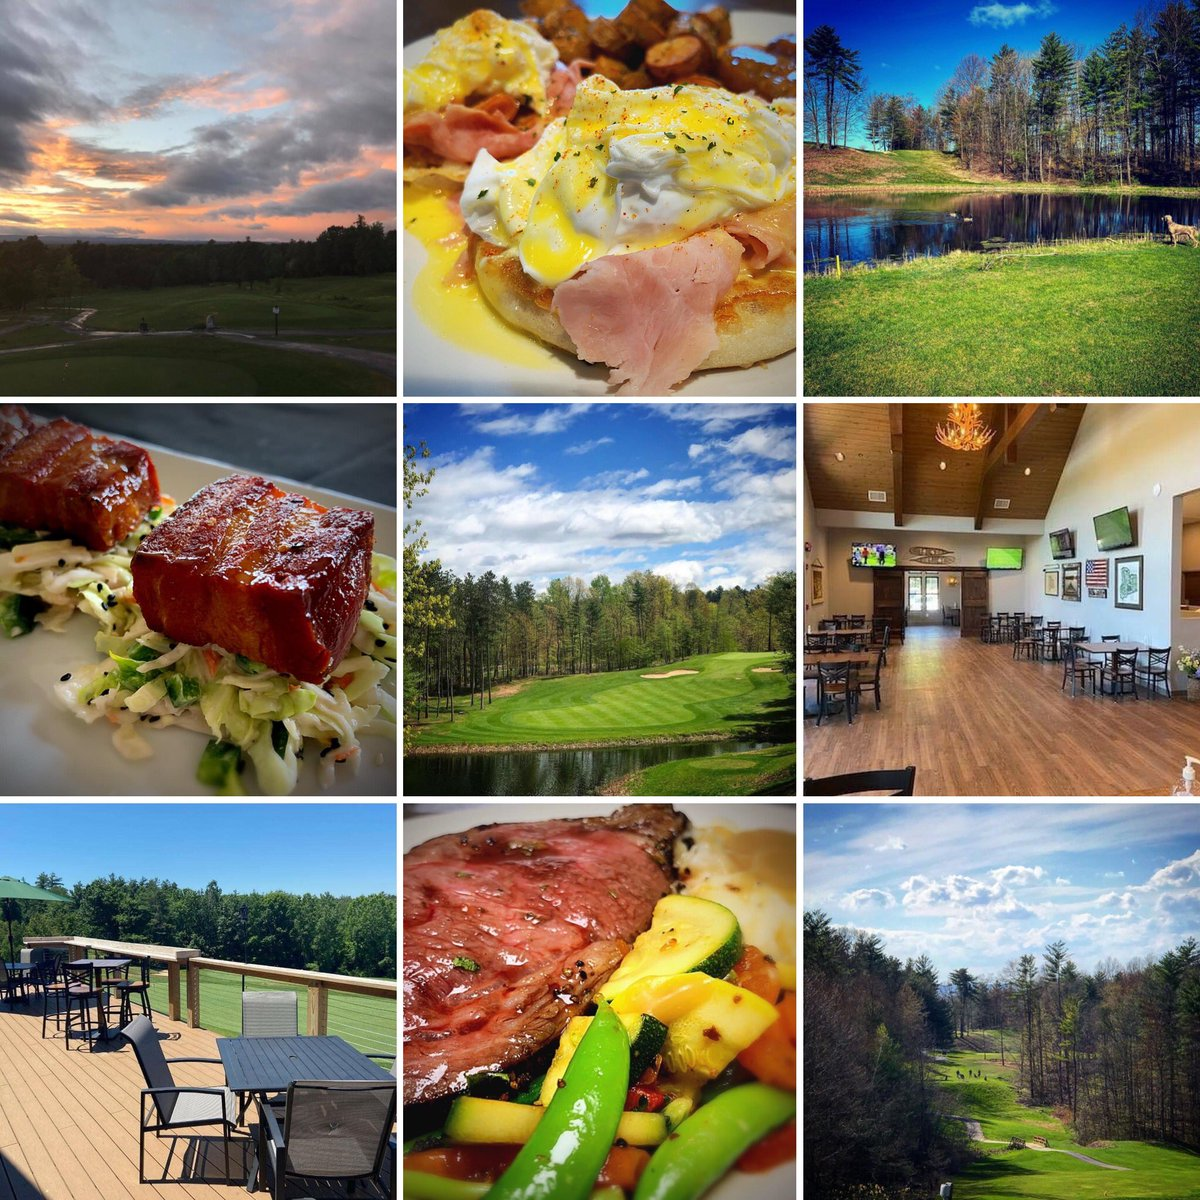 Visit @SaratogaLakeGC & @The_Hideaway_NY! Saratoga Lake Golf is a par 72 public golf course in the heart of a lush forest. The Hideaway has a menu that has something for everyone! Indoor and outdoor seating. Brunch! Events! Phone: (518) 306-1900 Web: